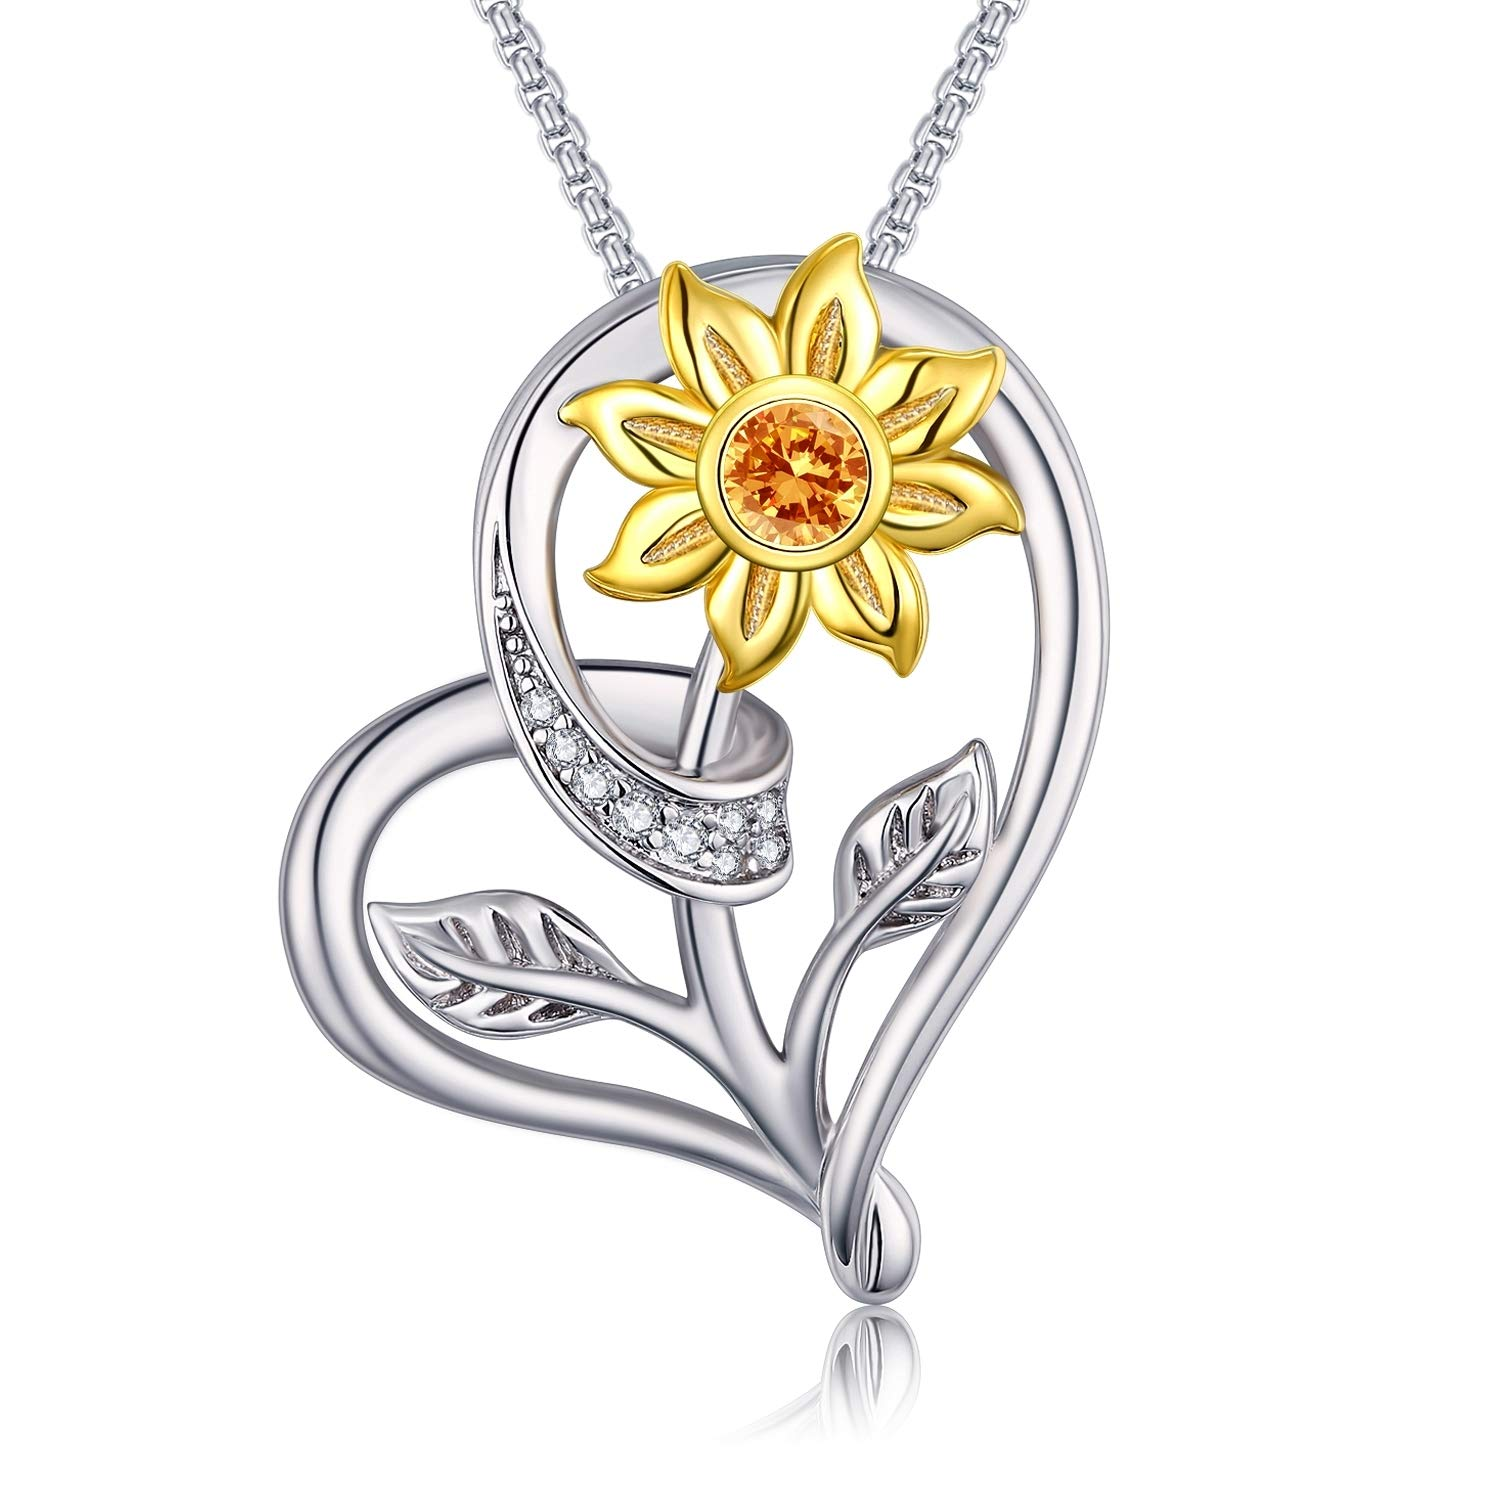 Klurent Sunflower Love Heart Pendant Necklace Jewelry My Sunshine Adjustable 18-20 Inches Blessings for Women Daughter Wife 925 Sterling Silver Jewelry Birthday